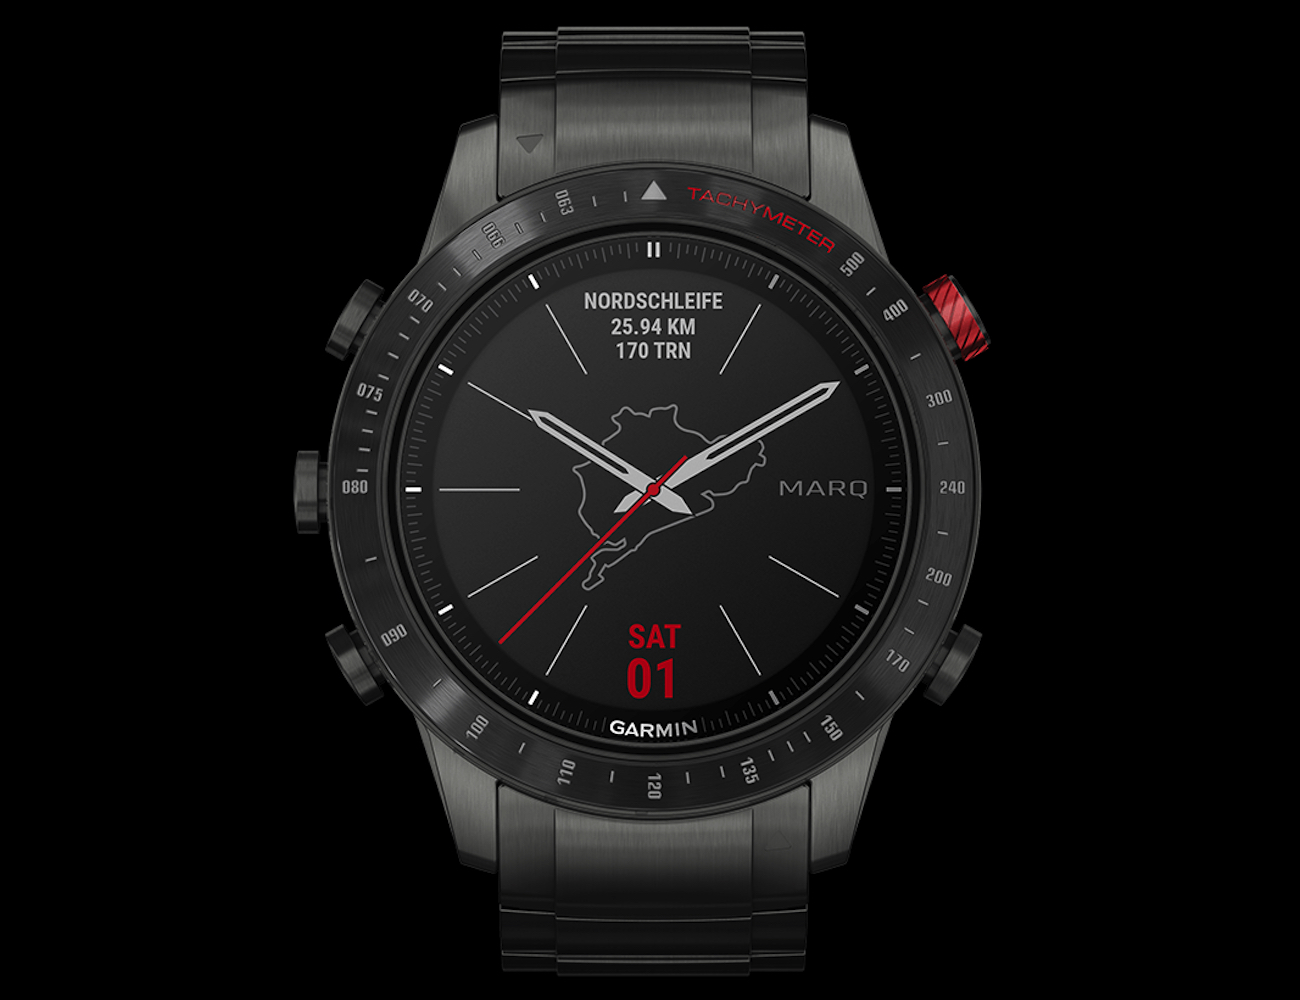 Garmin MARQ Driver Luxury Racing Tool Watch appeals to your inner racer